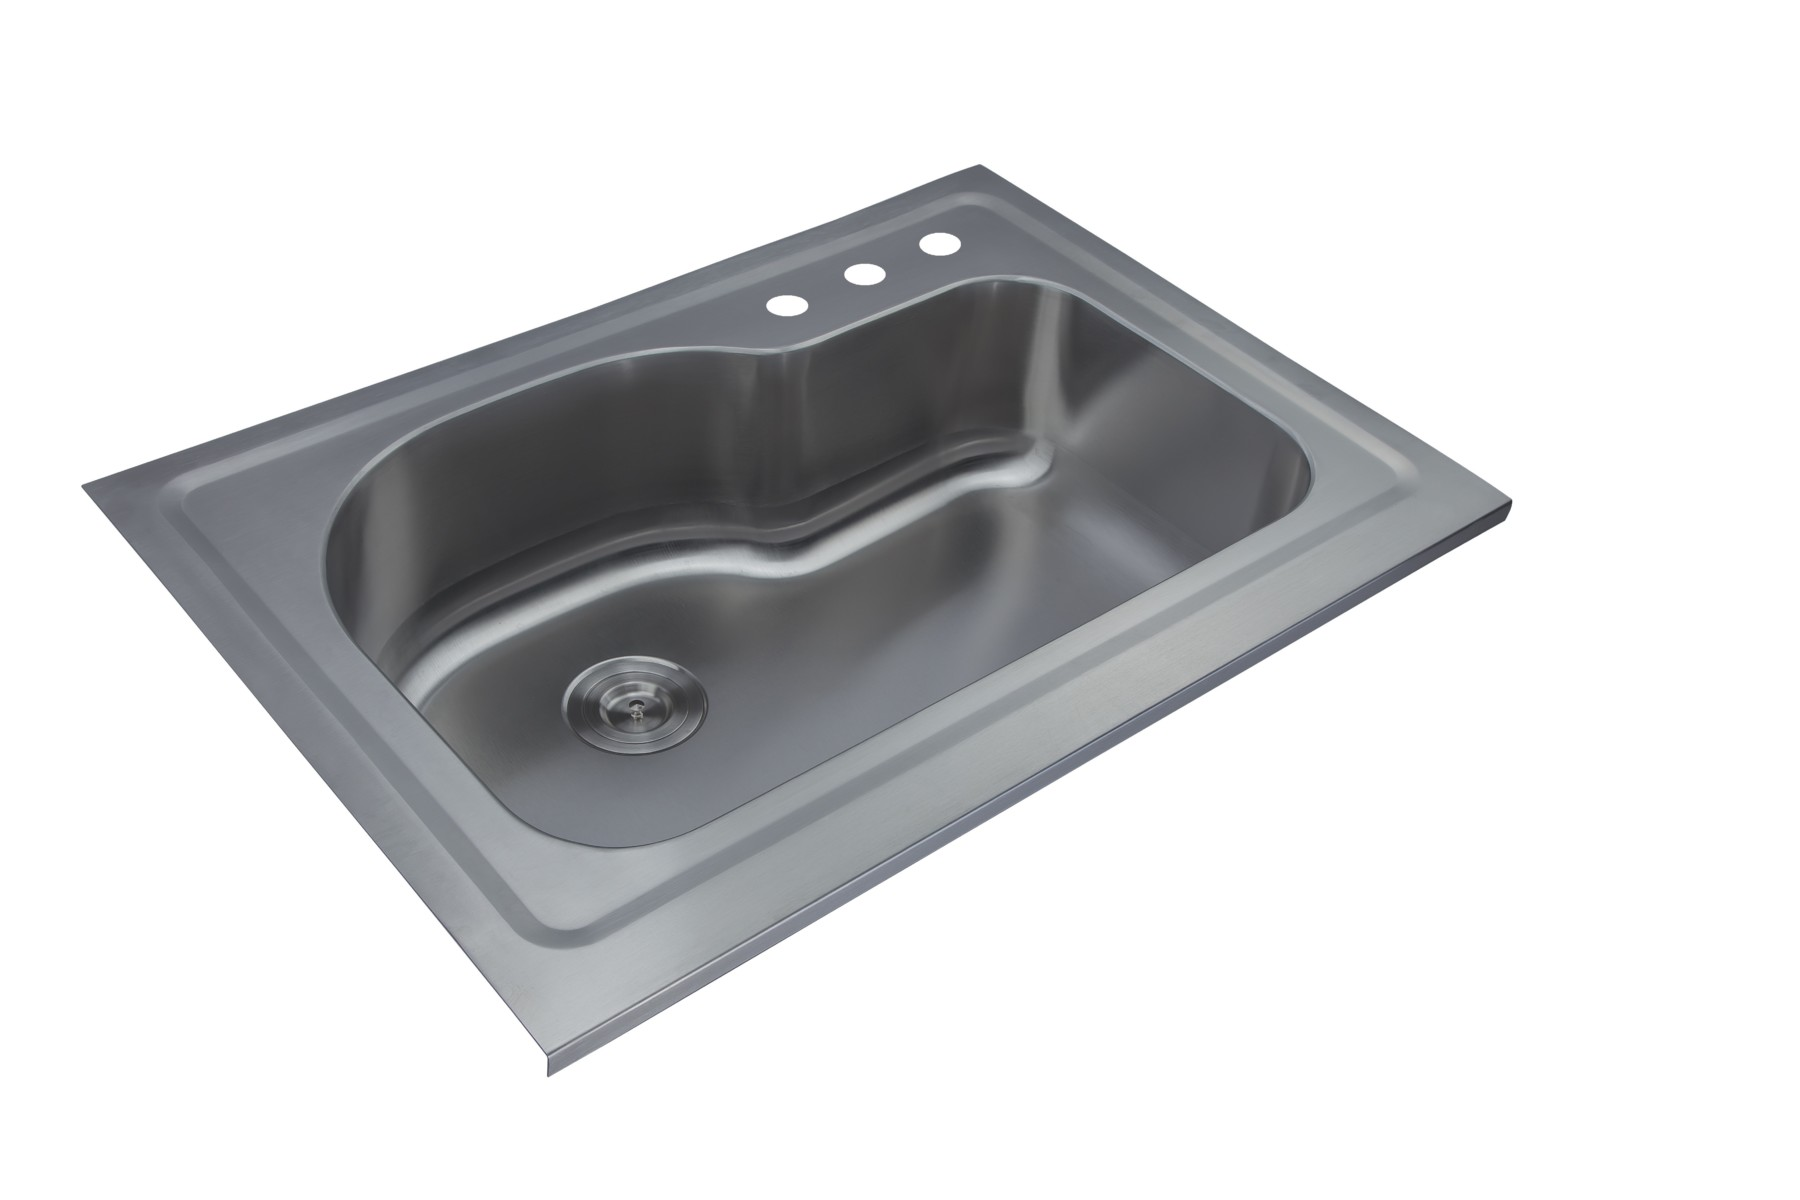 AS143 35 6  x 25 5  x 9 25  18G Single Bowl Slide In Topmount Economy  Stainless Steel Kitchen Sink. Quality Sinks and Fixtures   Stainless Steel Sinks   Porcelain